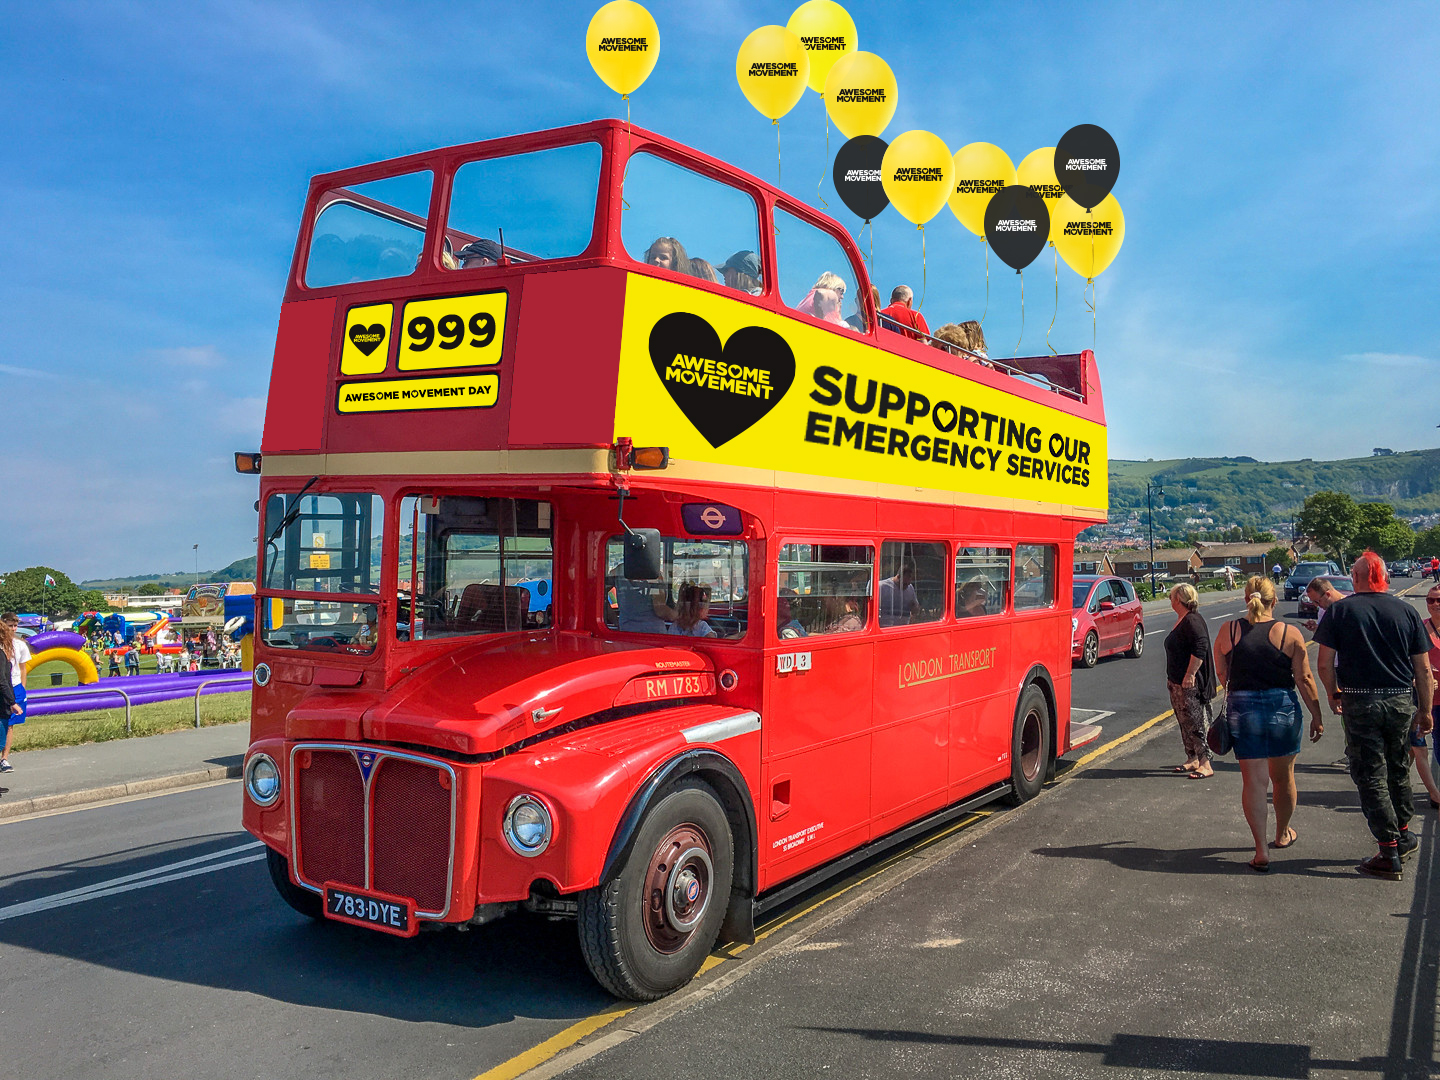 yellow support emergency bus.jpg